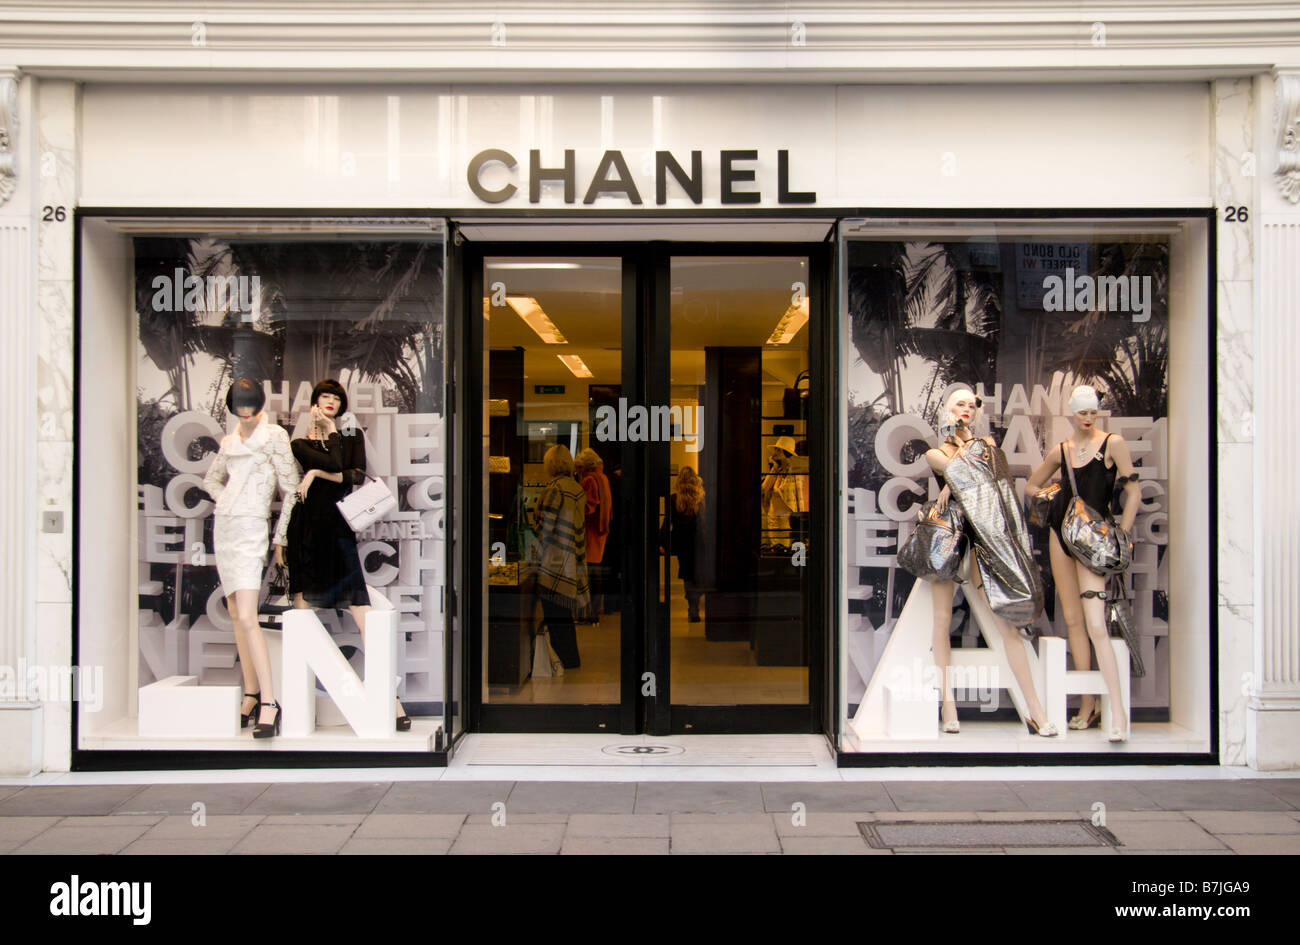 The shop front of the Chanel perfume & fragrance shop on Old Bond Street, London. Jan 2009 - Stock Image